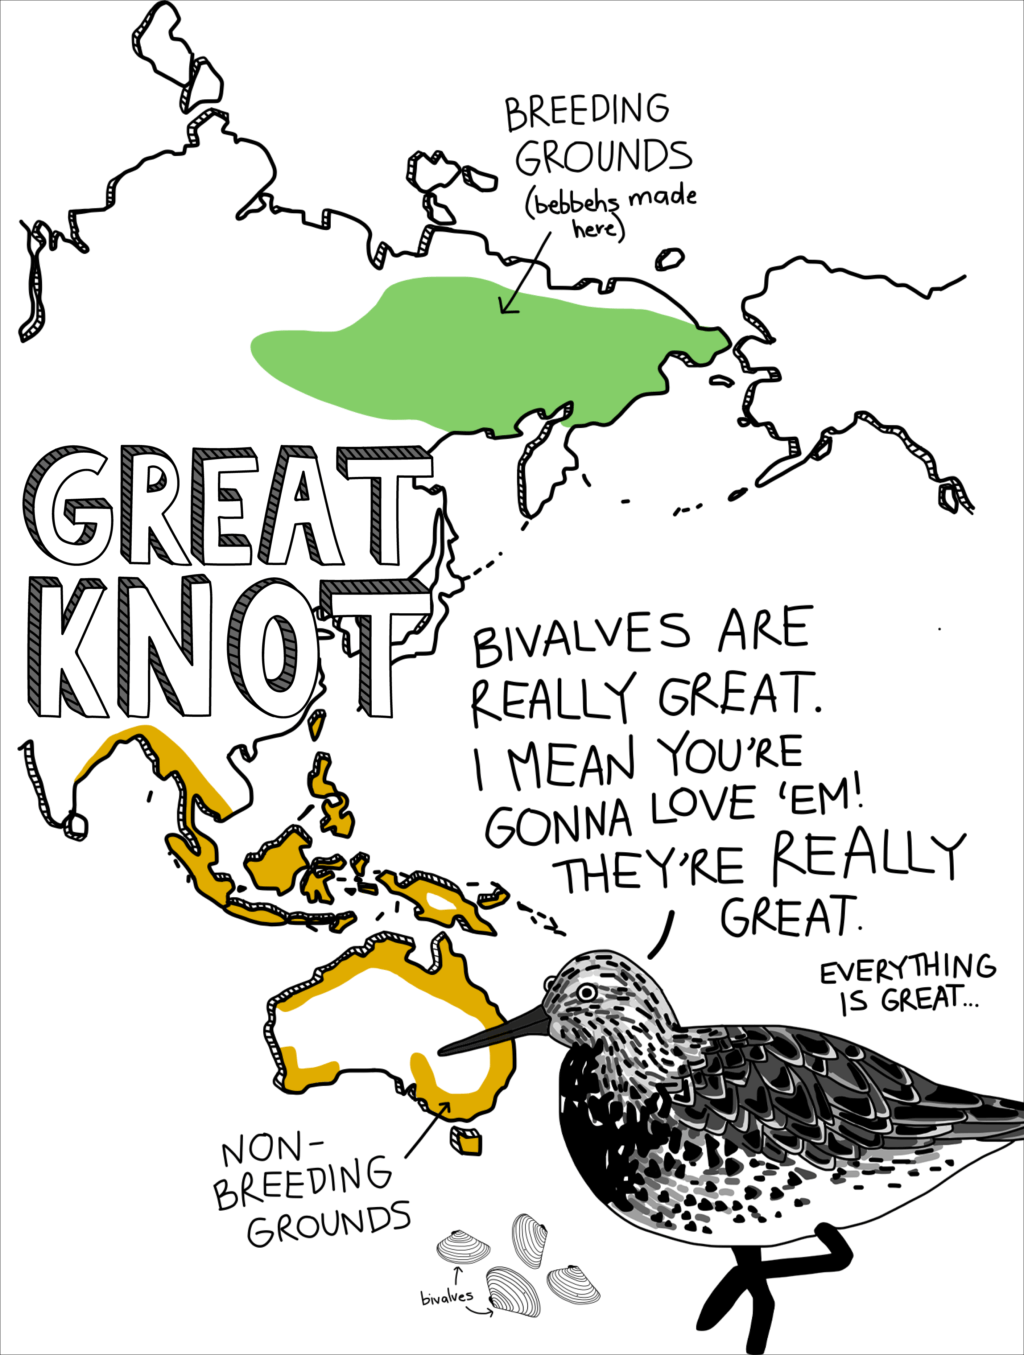 Great Knot map